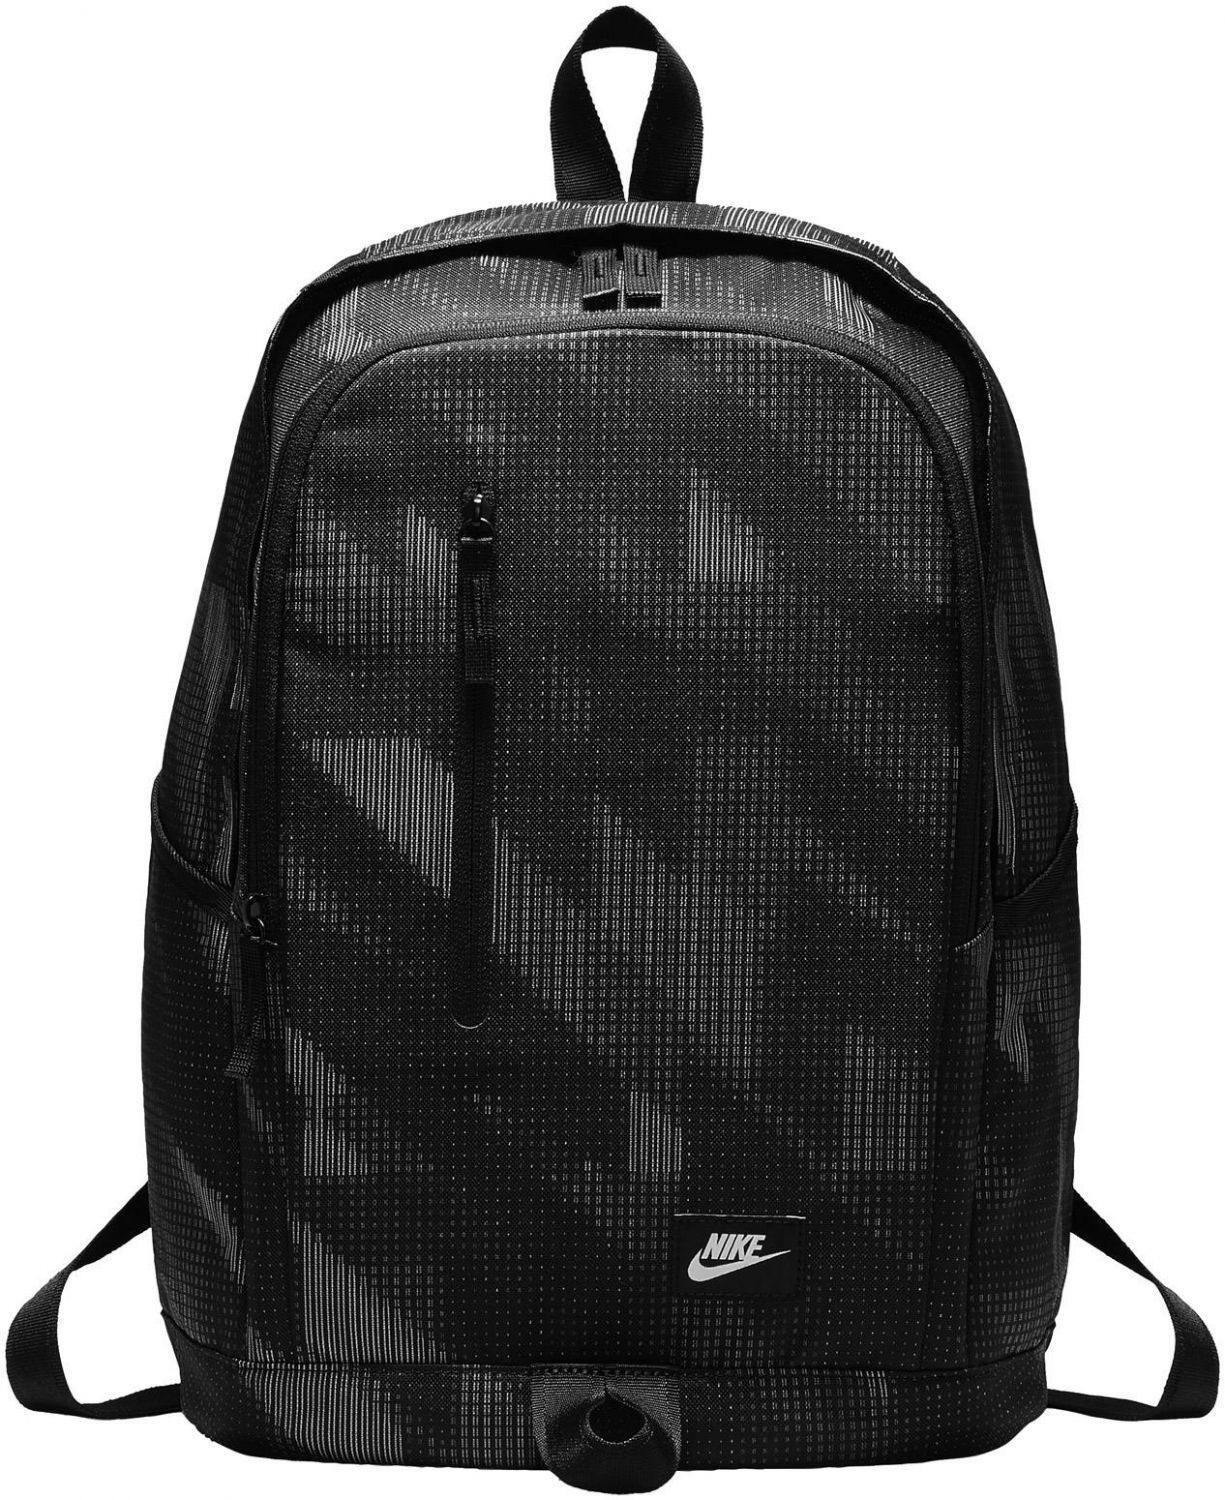 nike-all-access-soleday-rucksack-farbe-015-black-black-white-